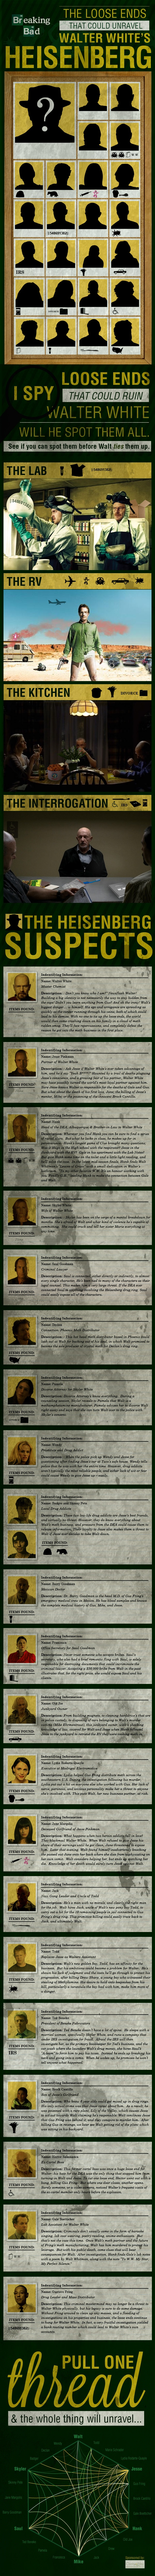 'Breaking Bad' Season 5: Walter White's 22 Loose Ends #Infographic